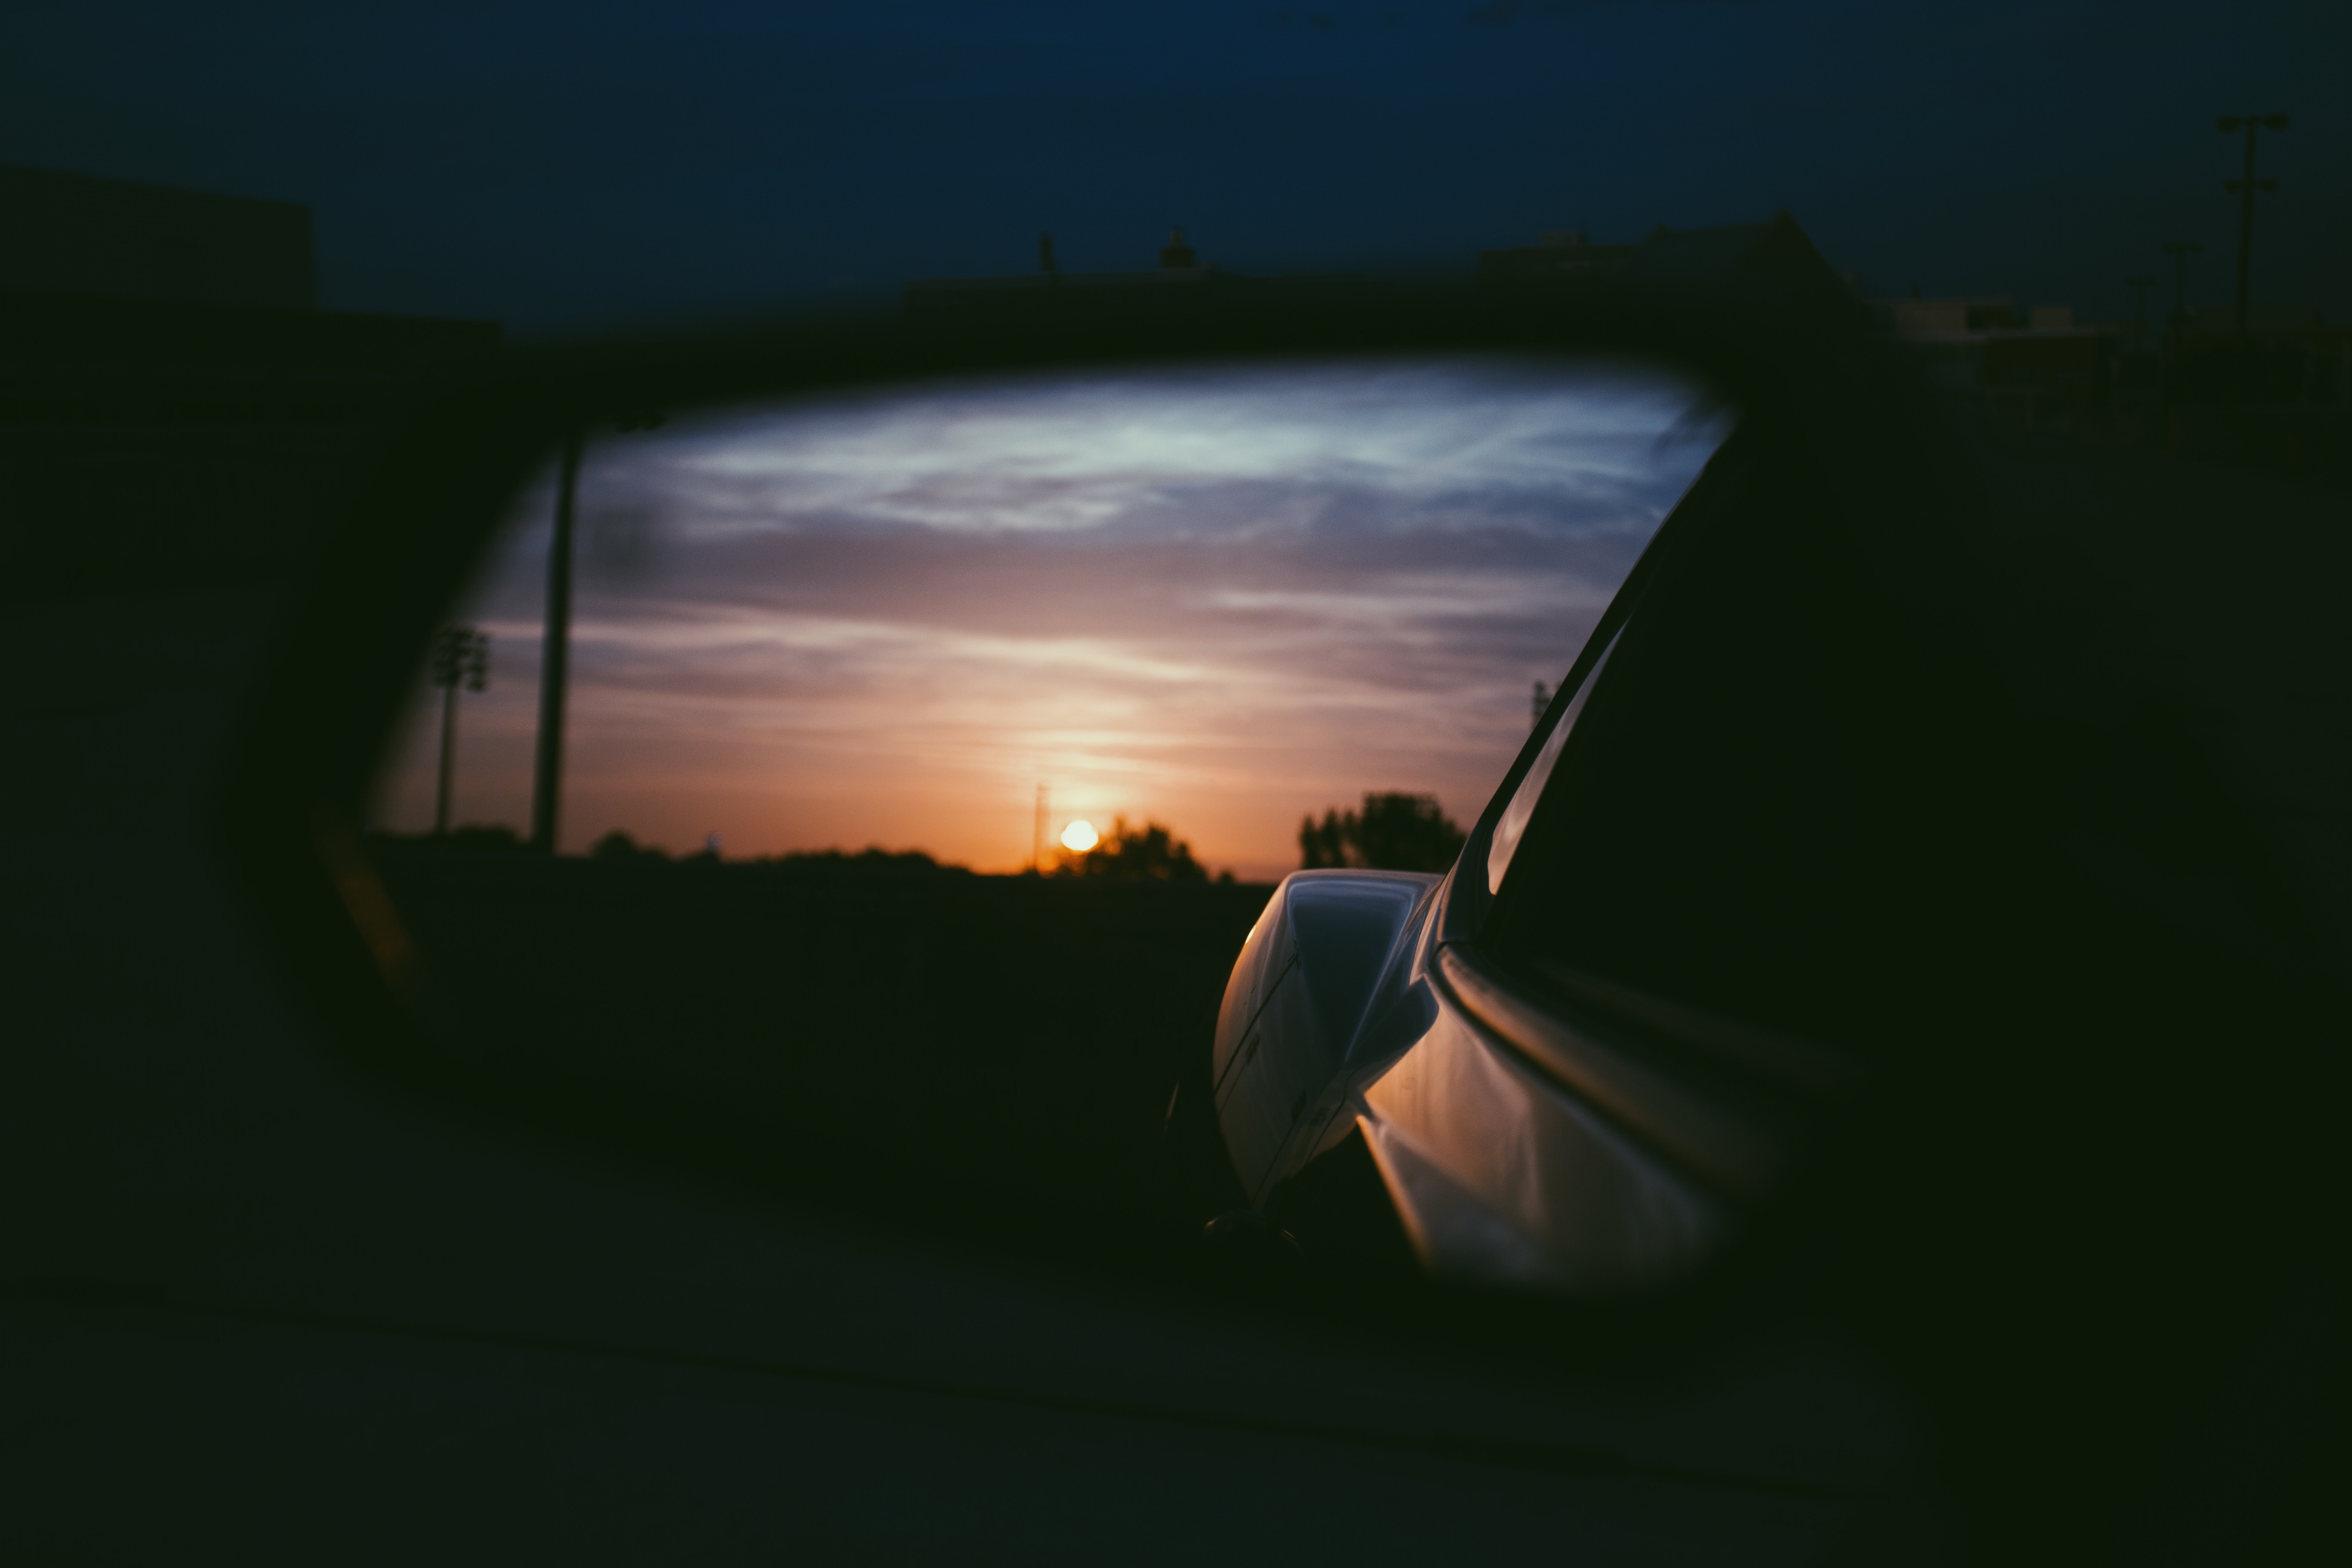 View of the sunset from the car on the side mirror